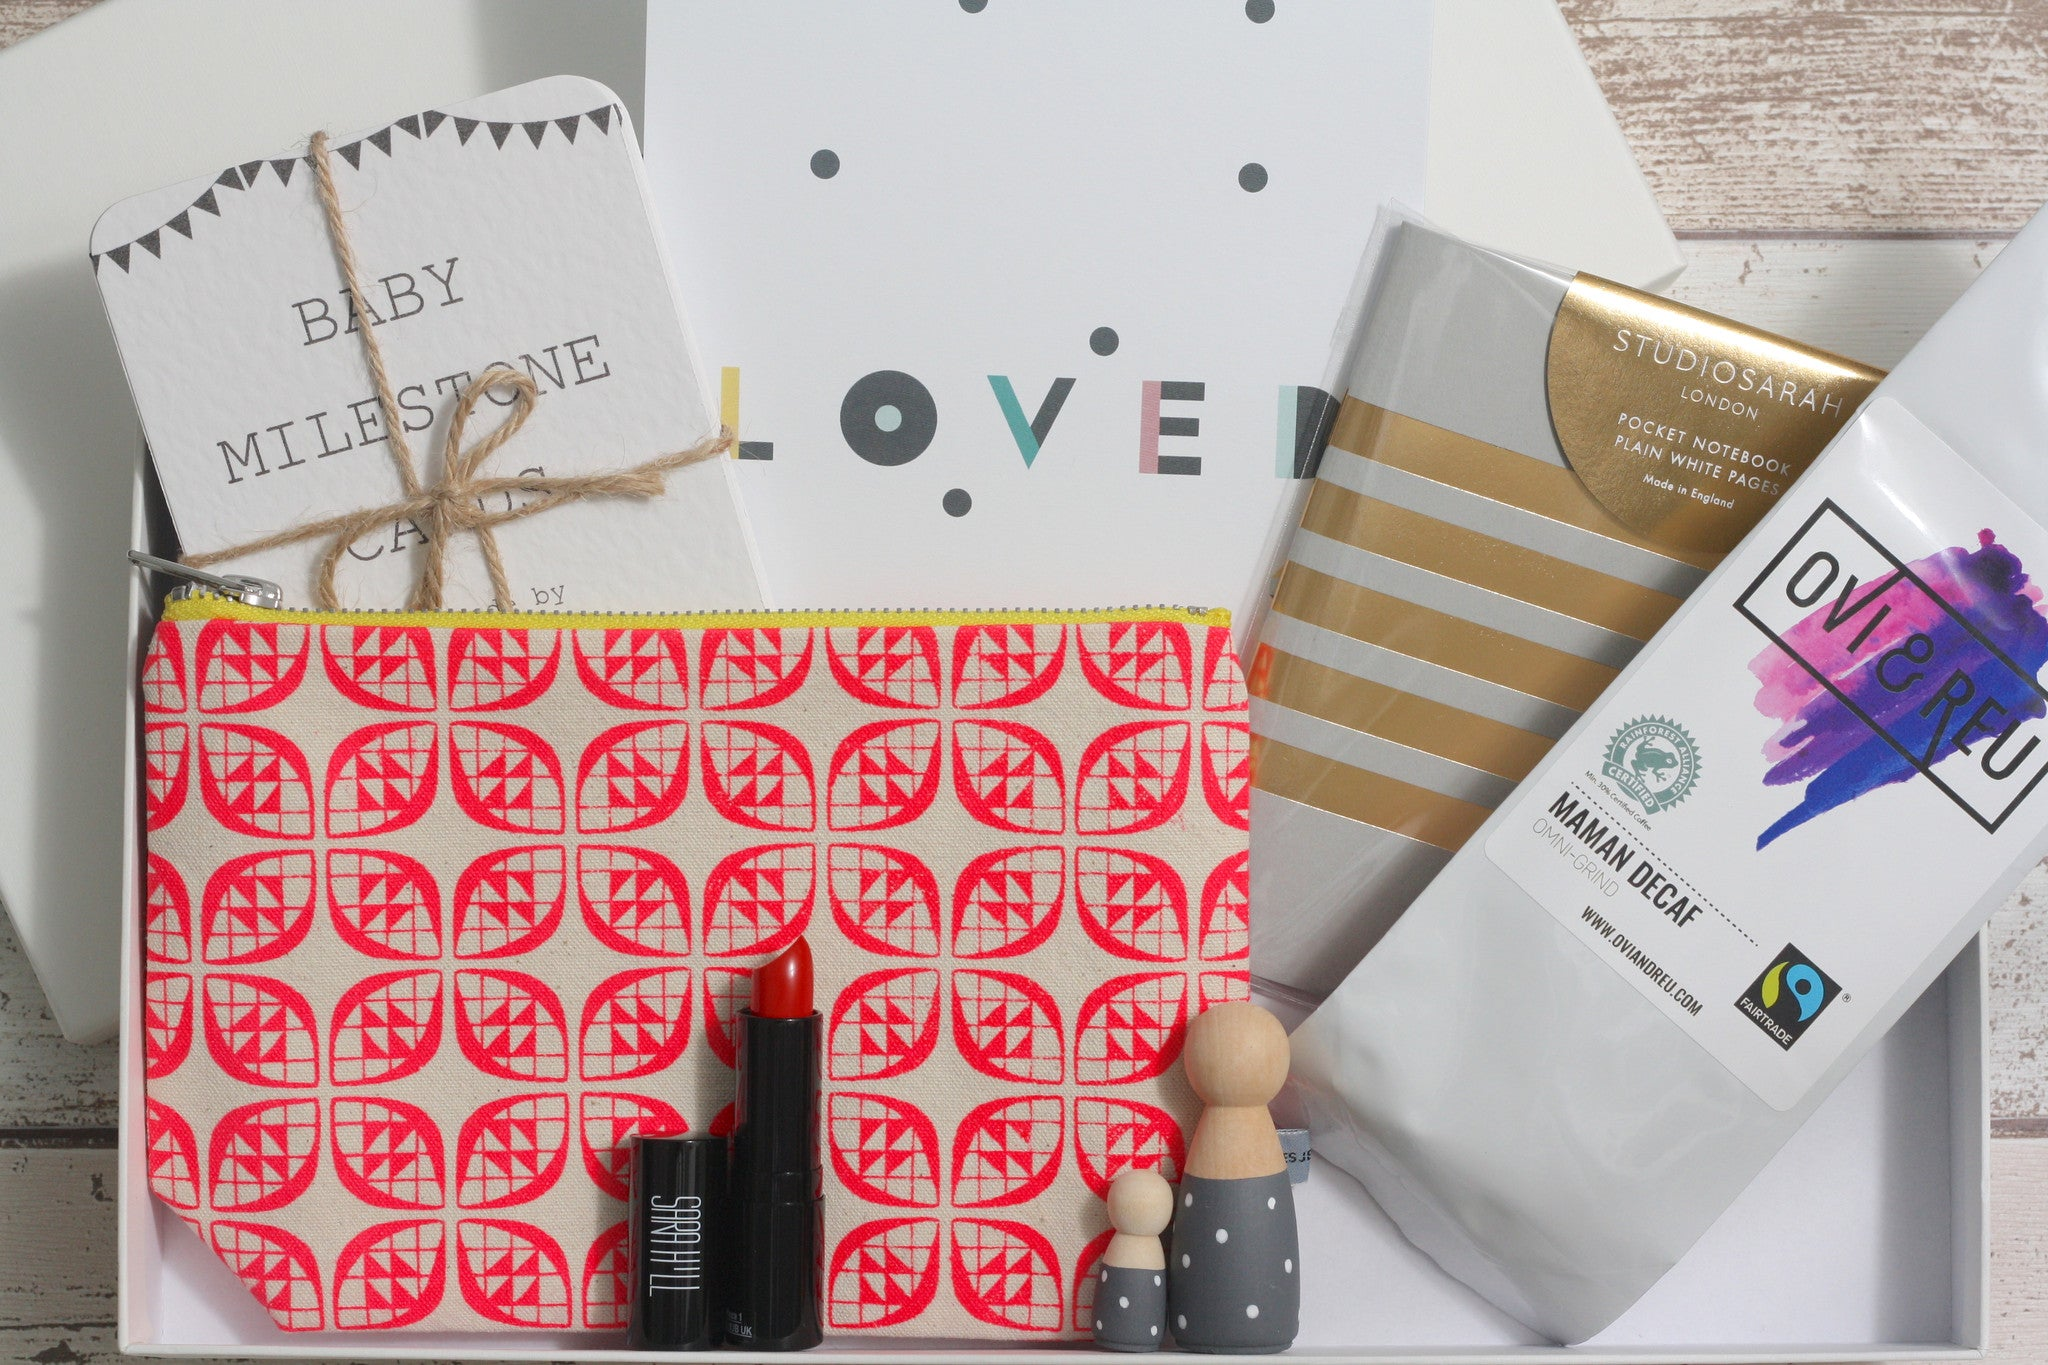 The Ovi and Reu Parisian Collection gift box for new mums and babies